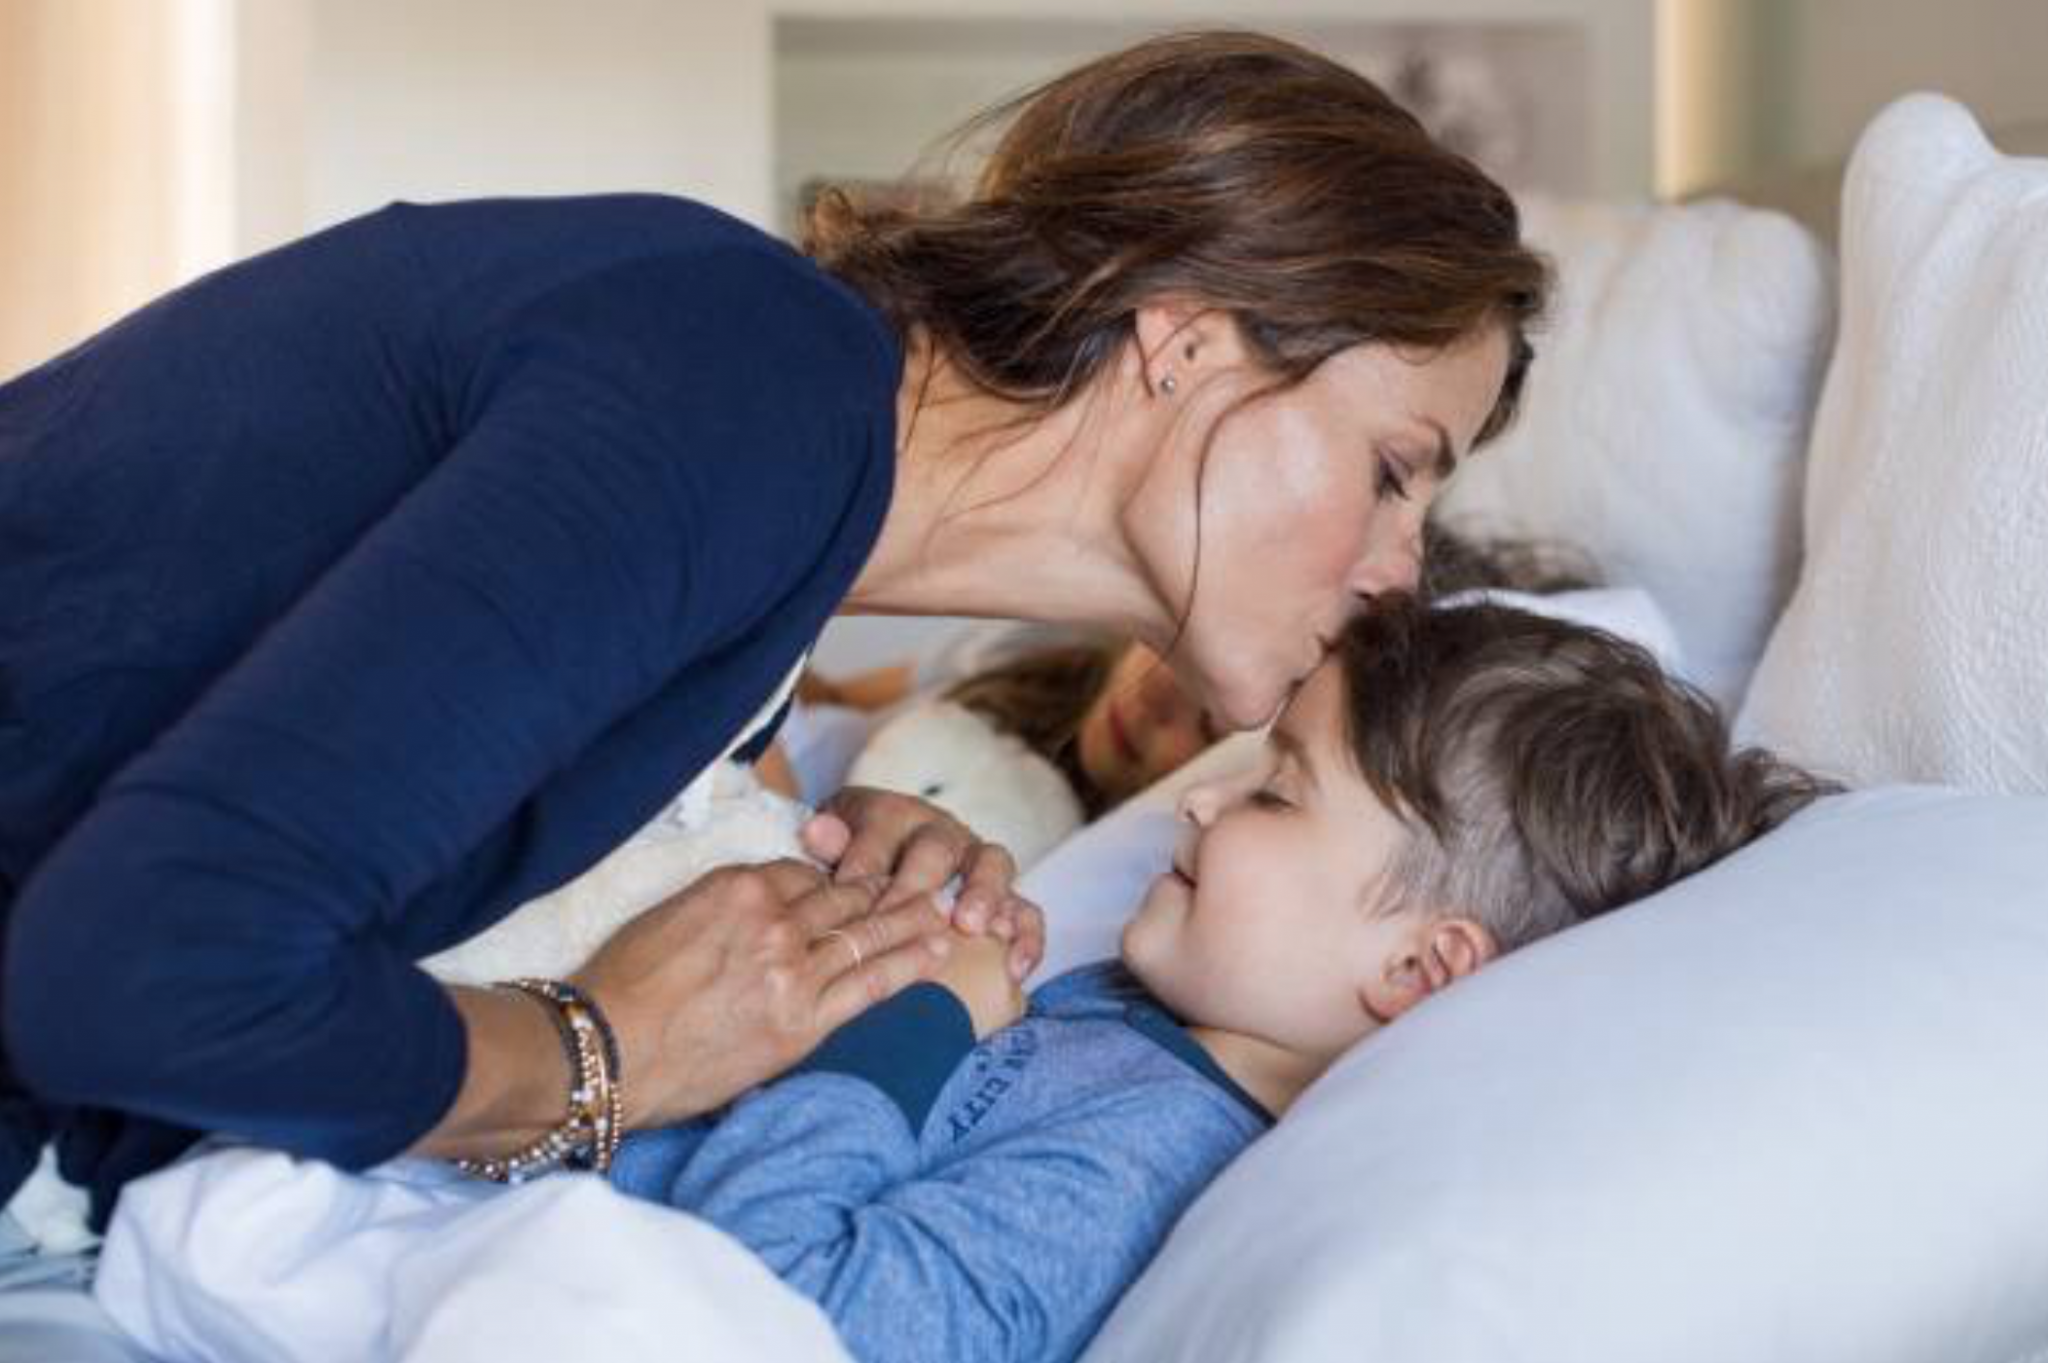 How child meditation can help your child drift off into reparative slumber